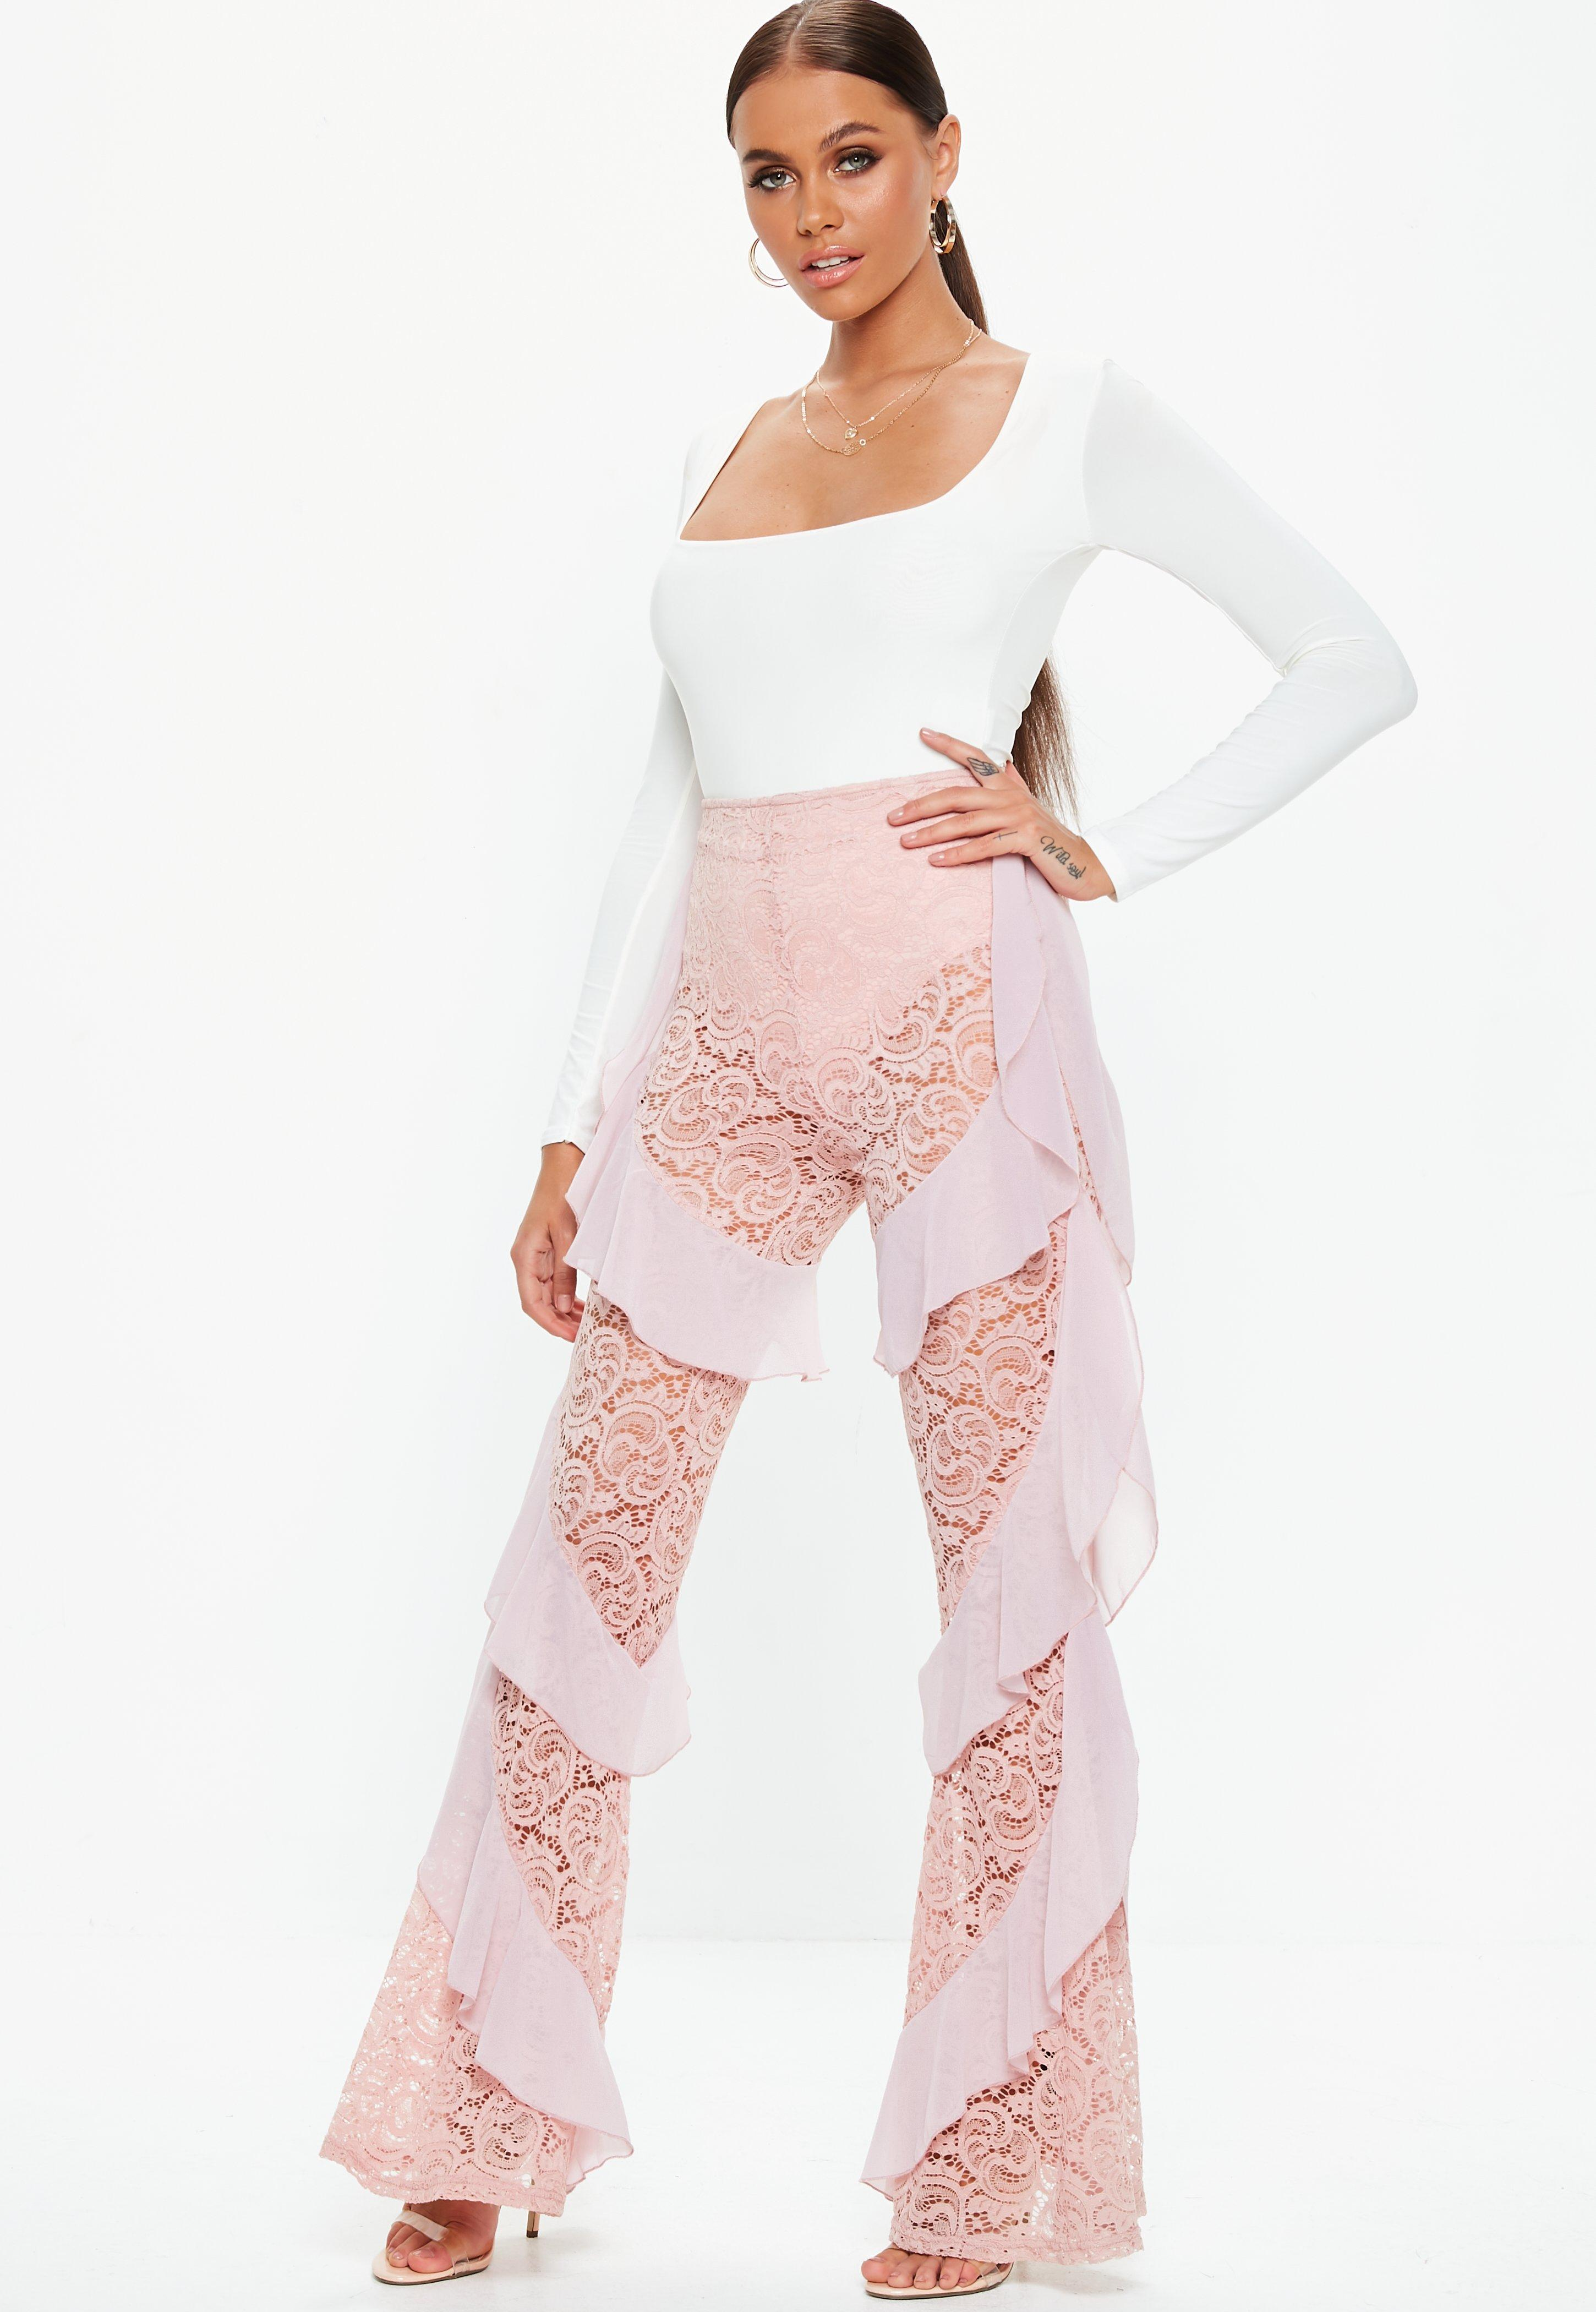 Image result for carli bybel x missguided pink lace